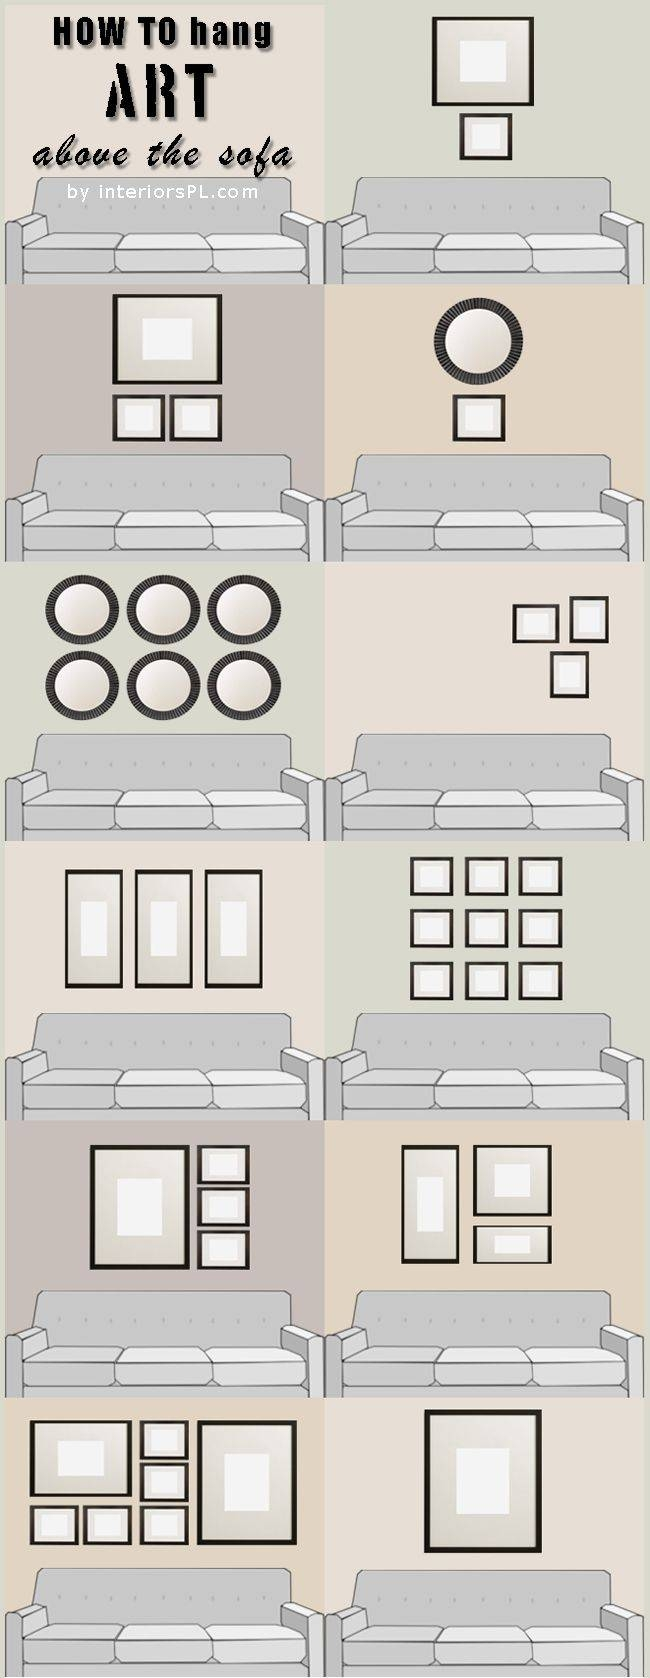 199 Best Wall Behind The Sofa Images On Pinterest | Above The Throughout 2017 Sofa Size Wall Art (View 15 of 20)